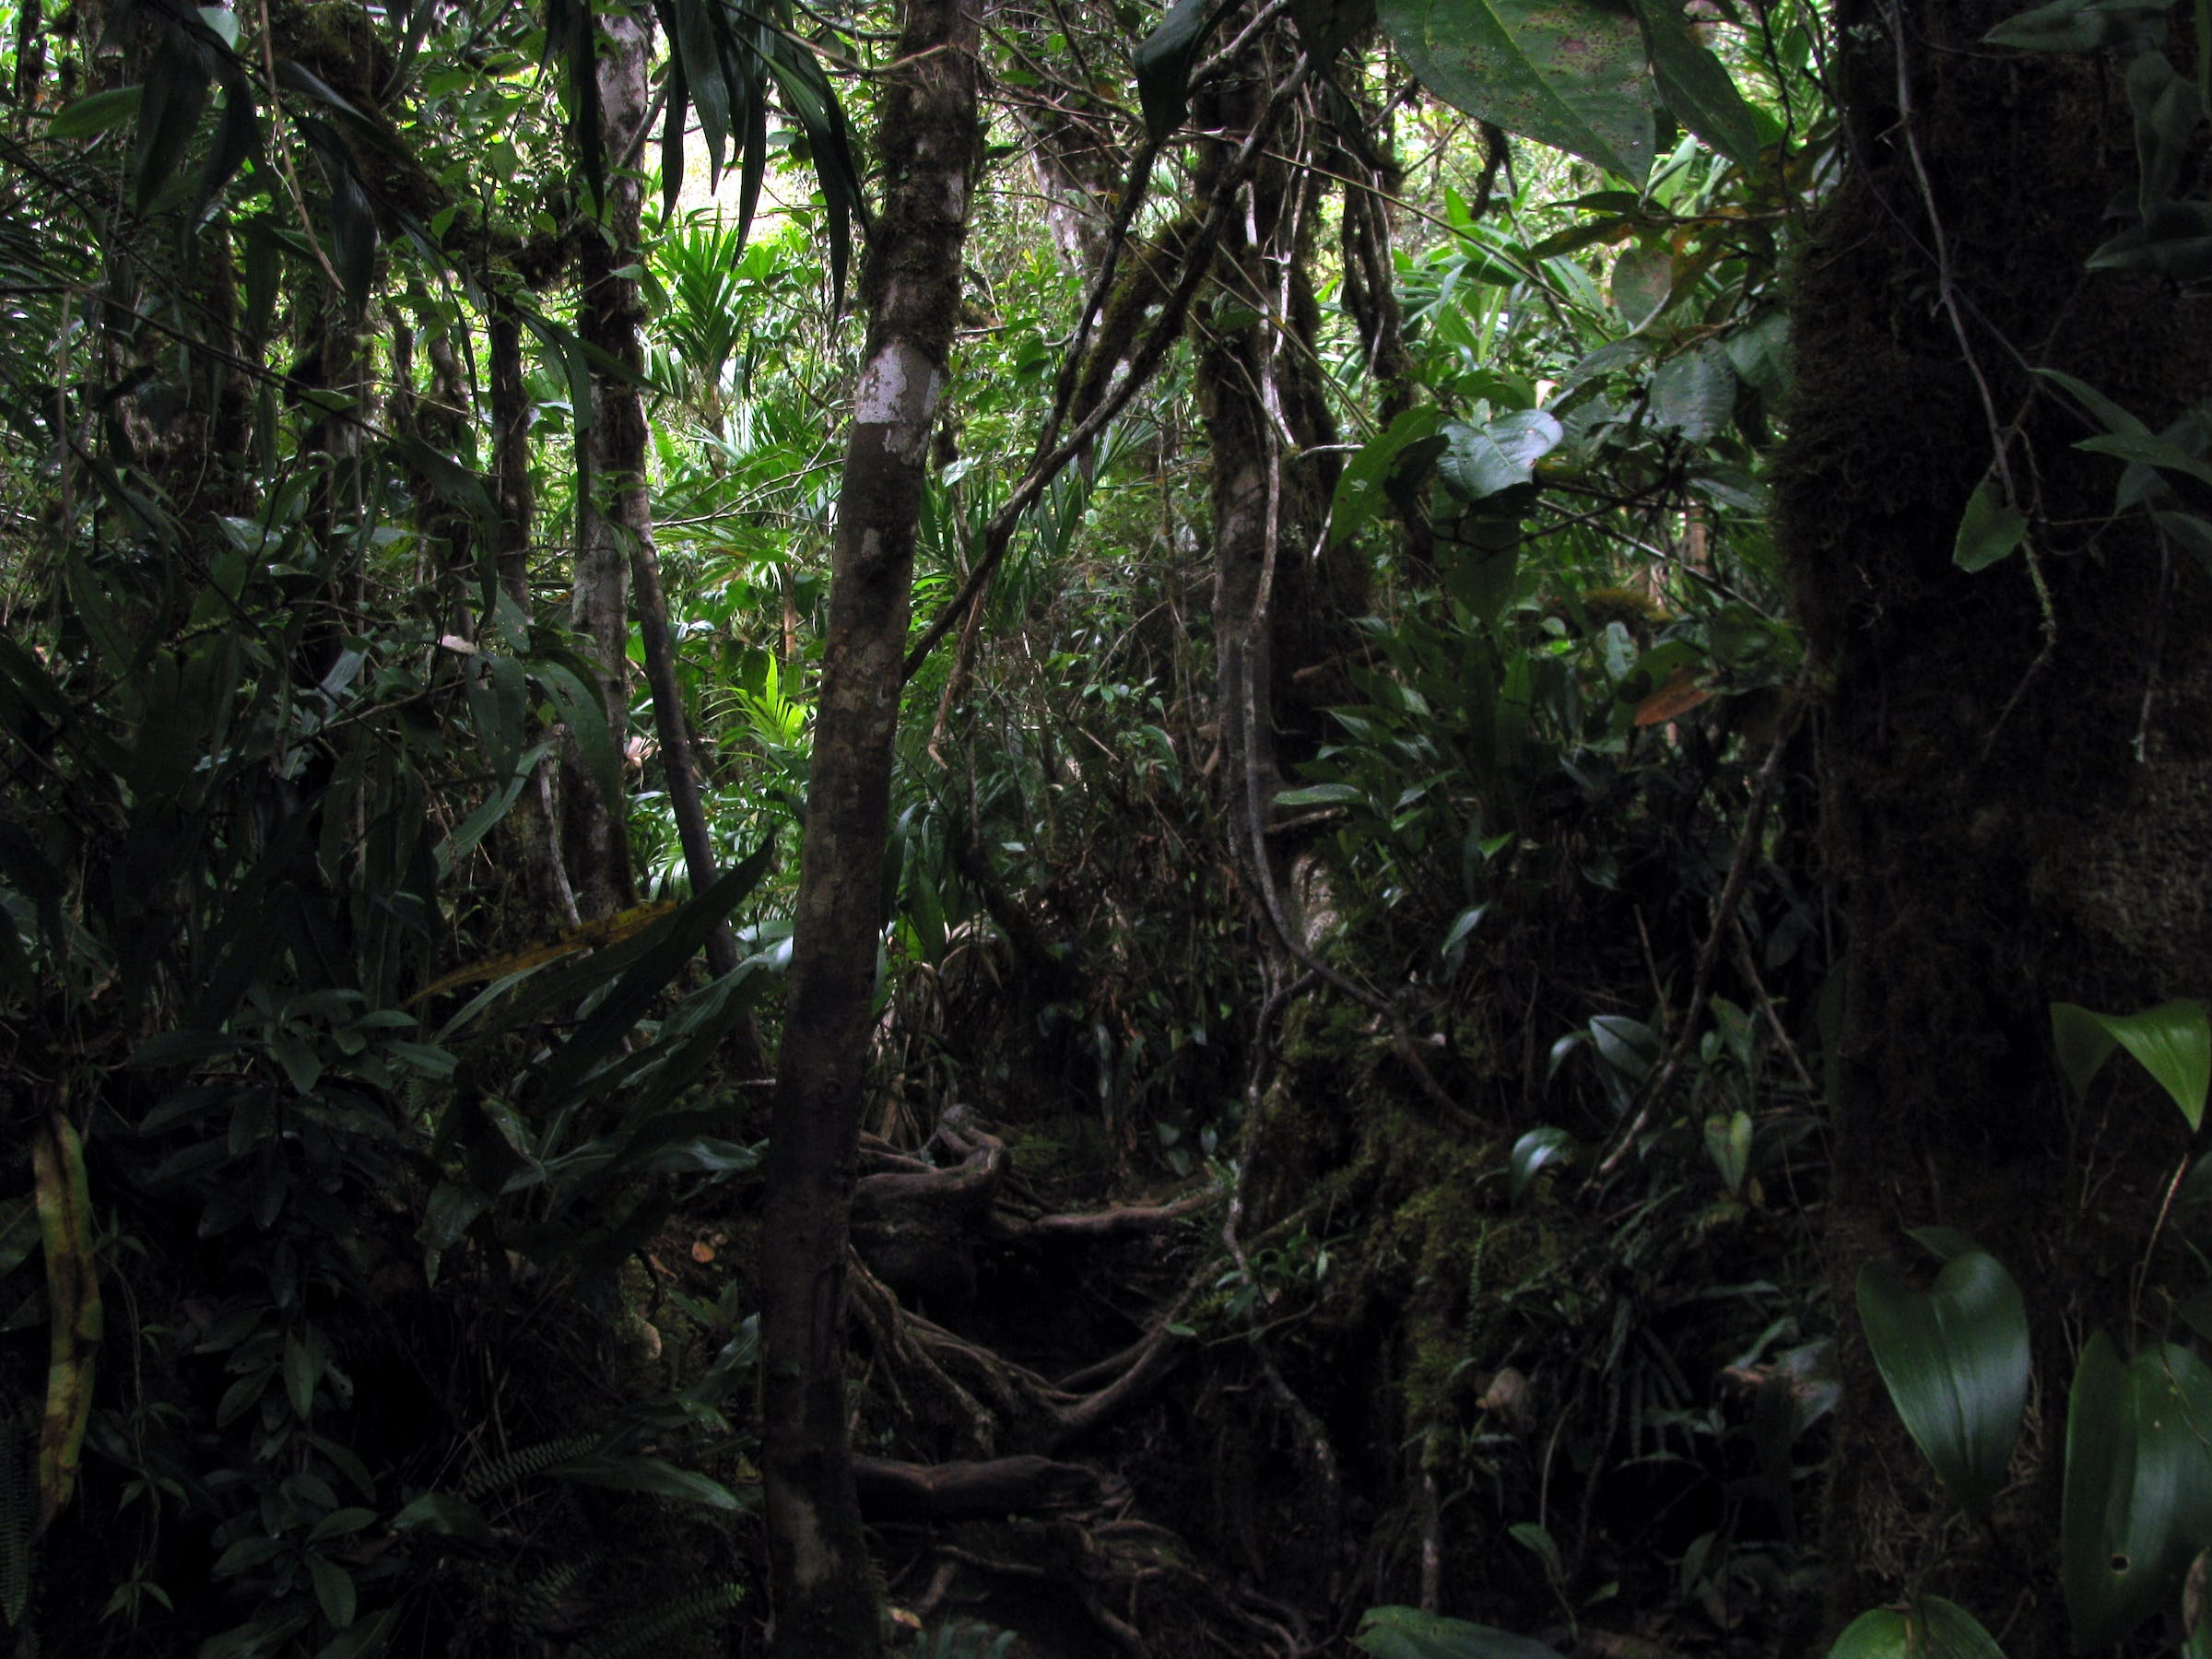 Jungle, near Brazil/Venezuela border